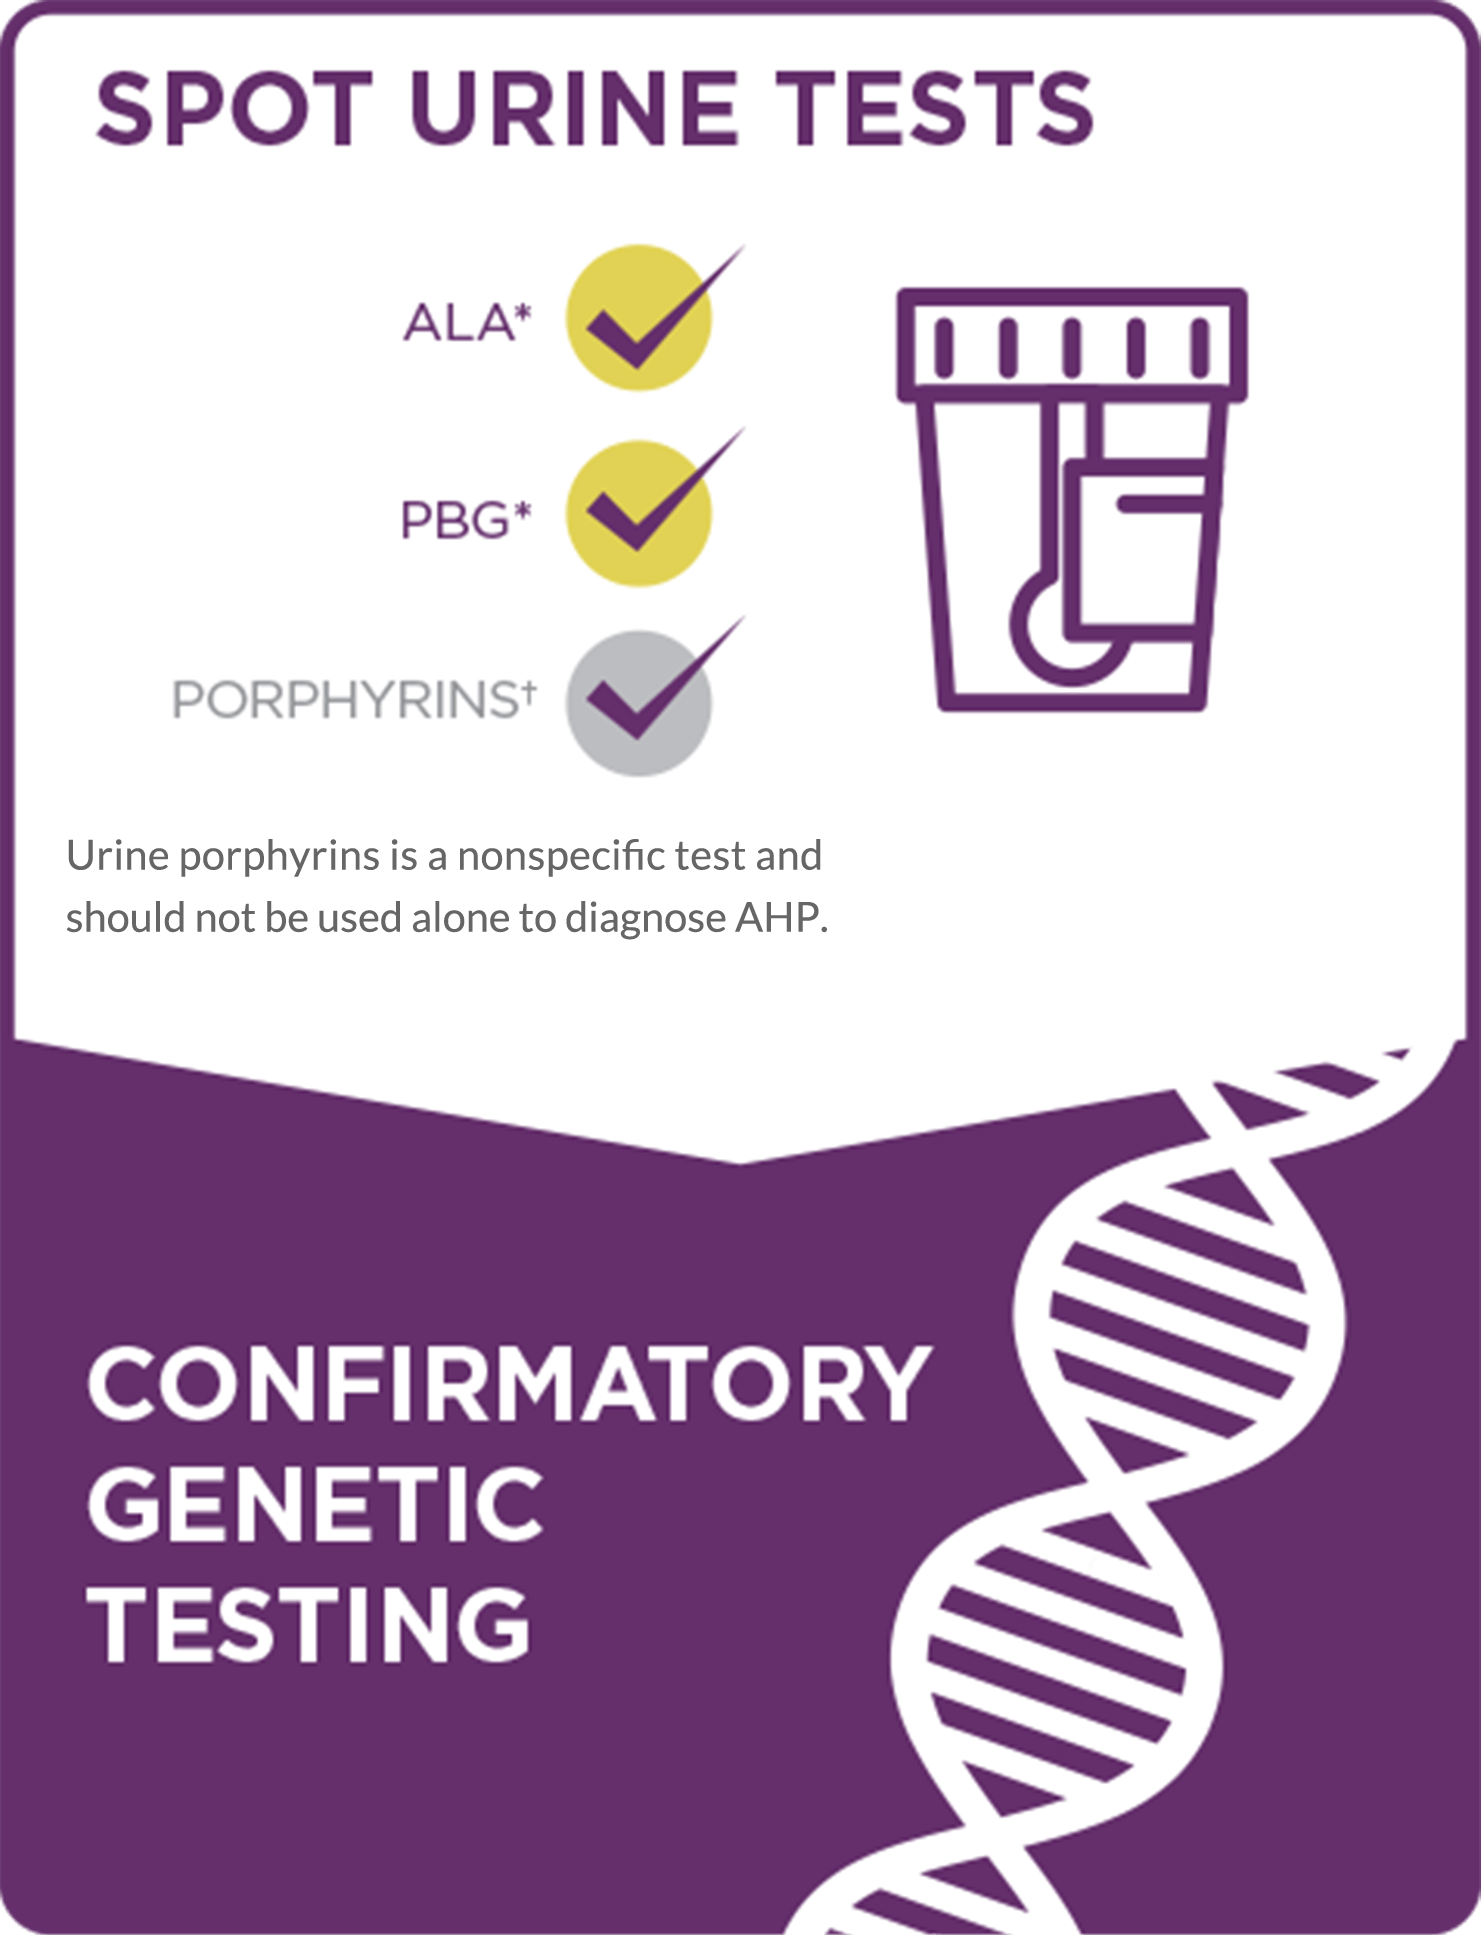 Spot urine tests and genetic confirmation